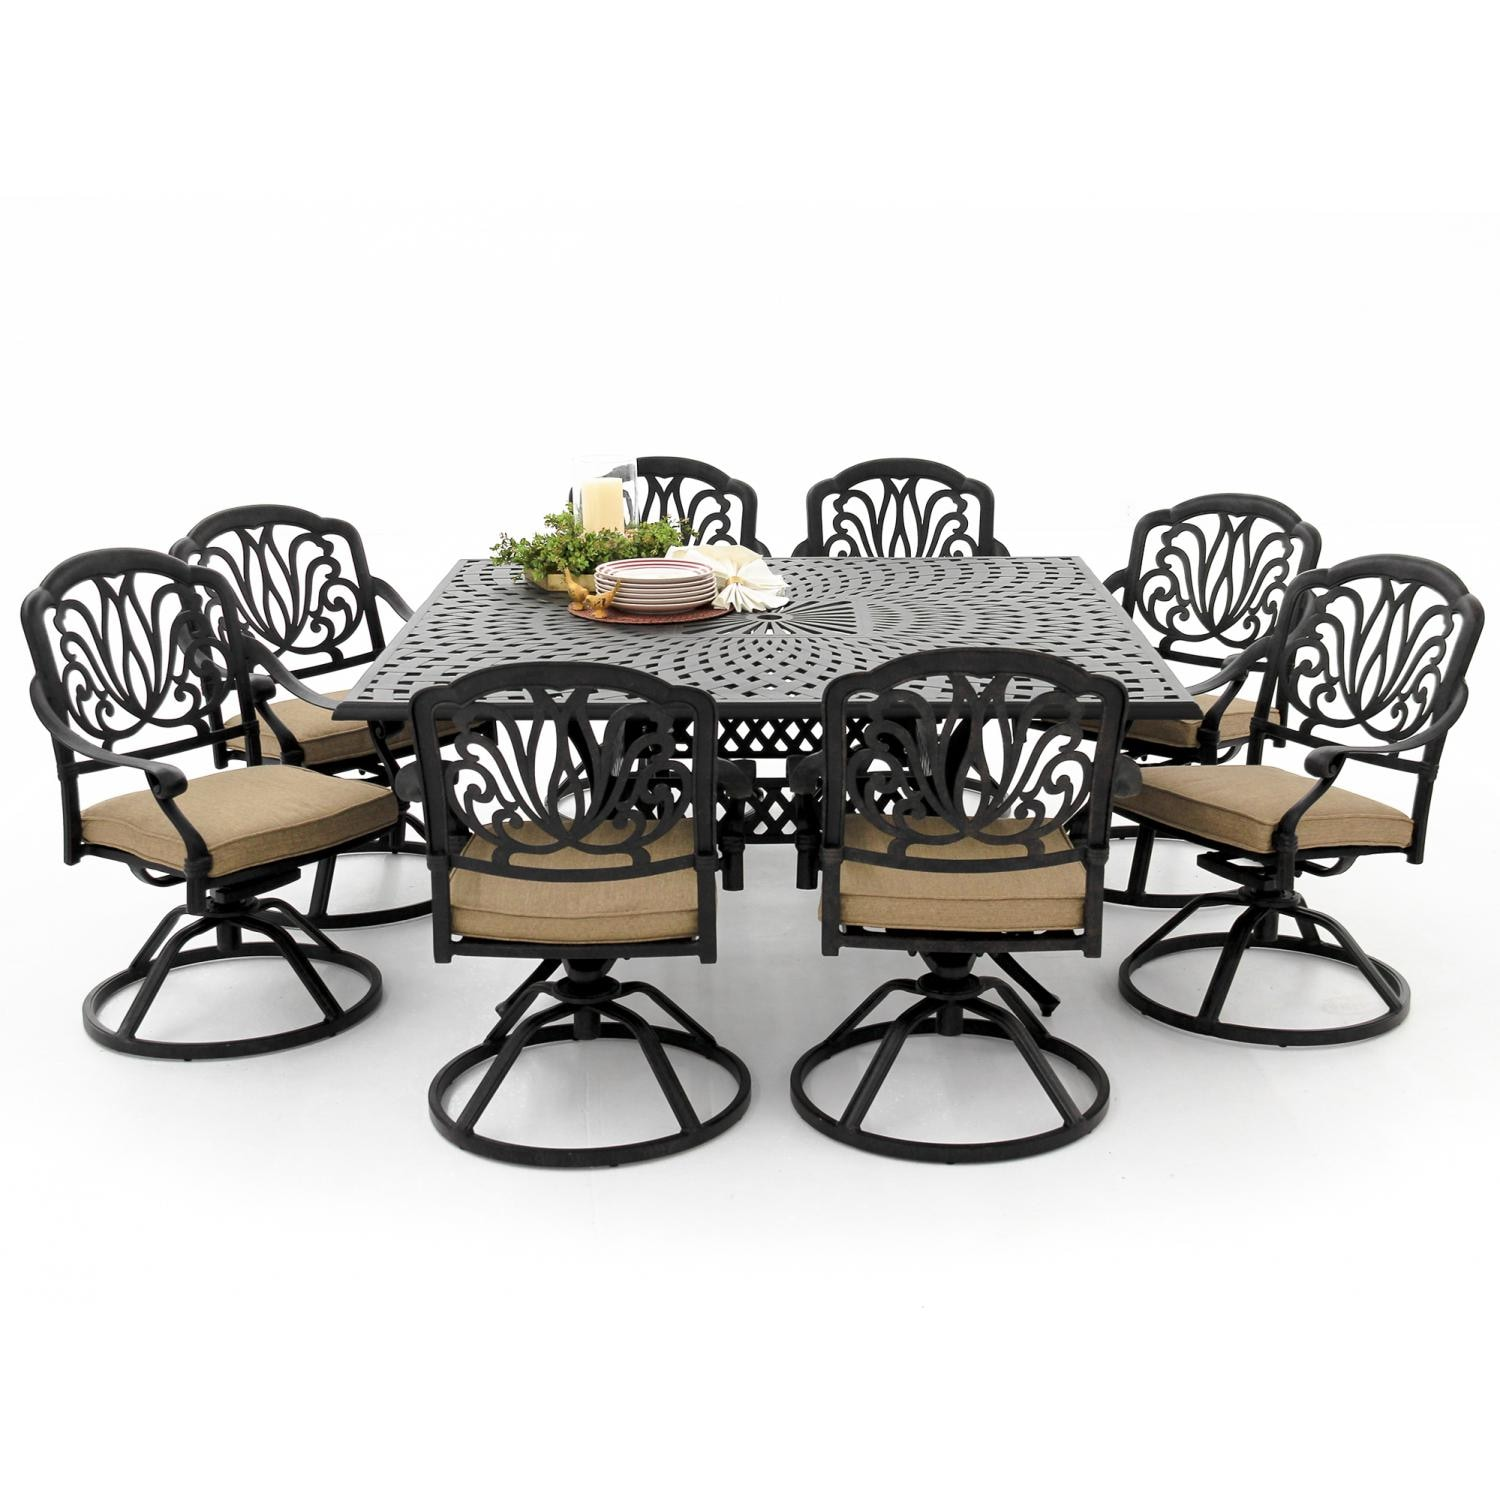 Rosedown 9 Piece Cast Aluminum Patio Dining Set With Swivel Rockers And  Square Table By Lakeview Outdoor Designs   Linen Sesame